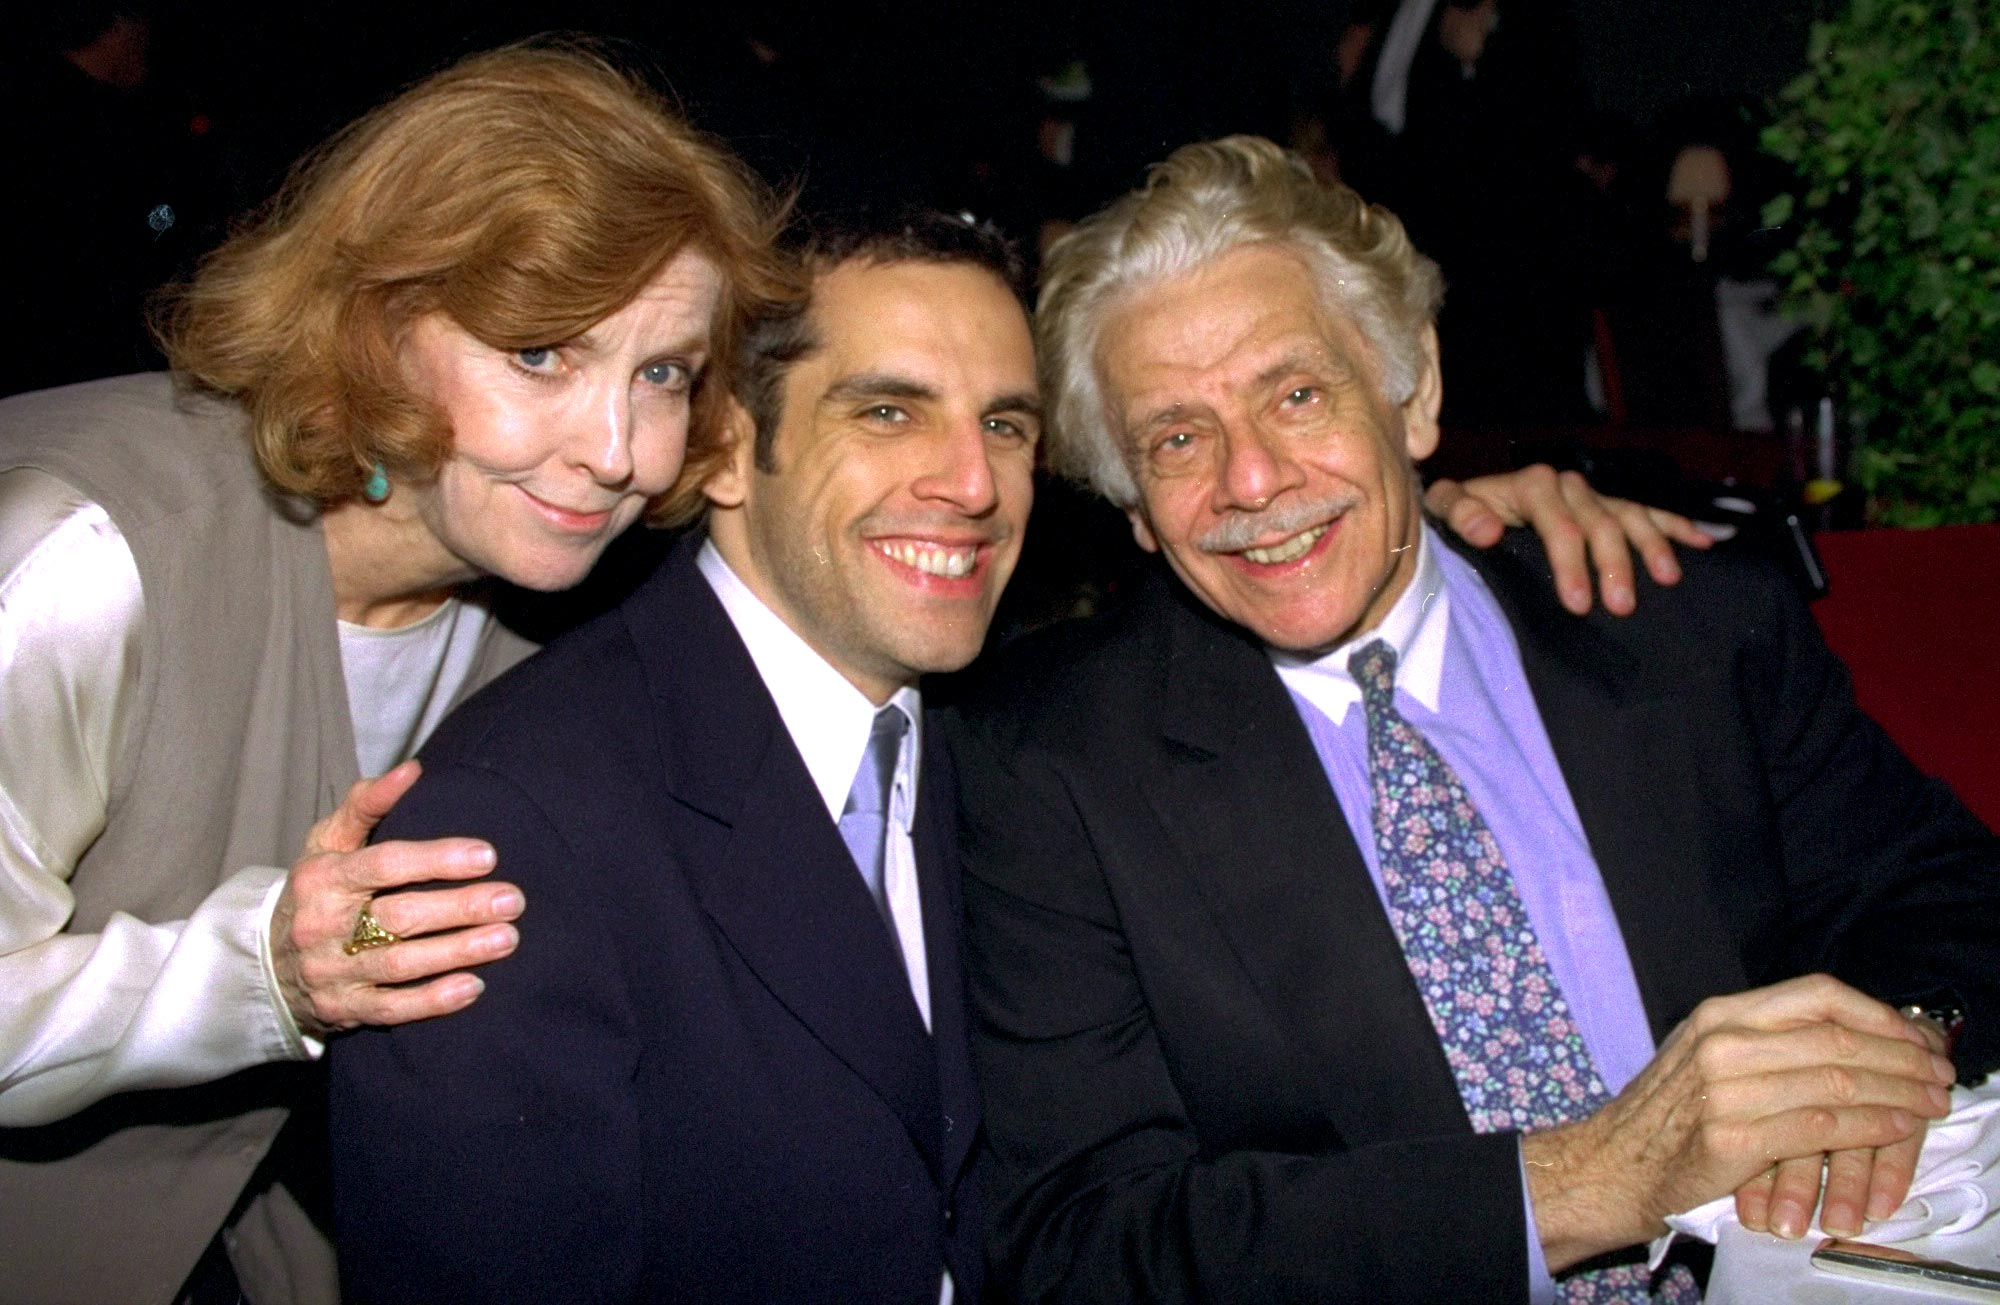 Ben Stiller with his parents, Jerry Stiller and Anne Meara